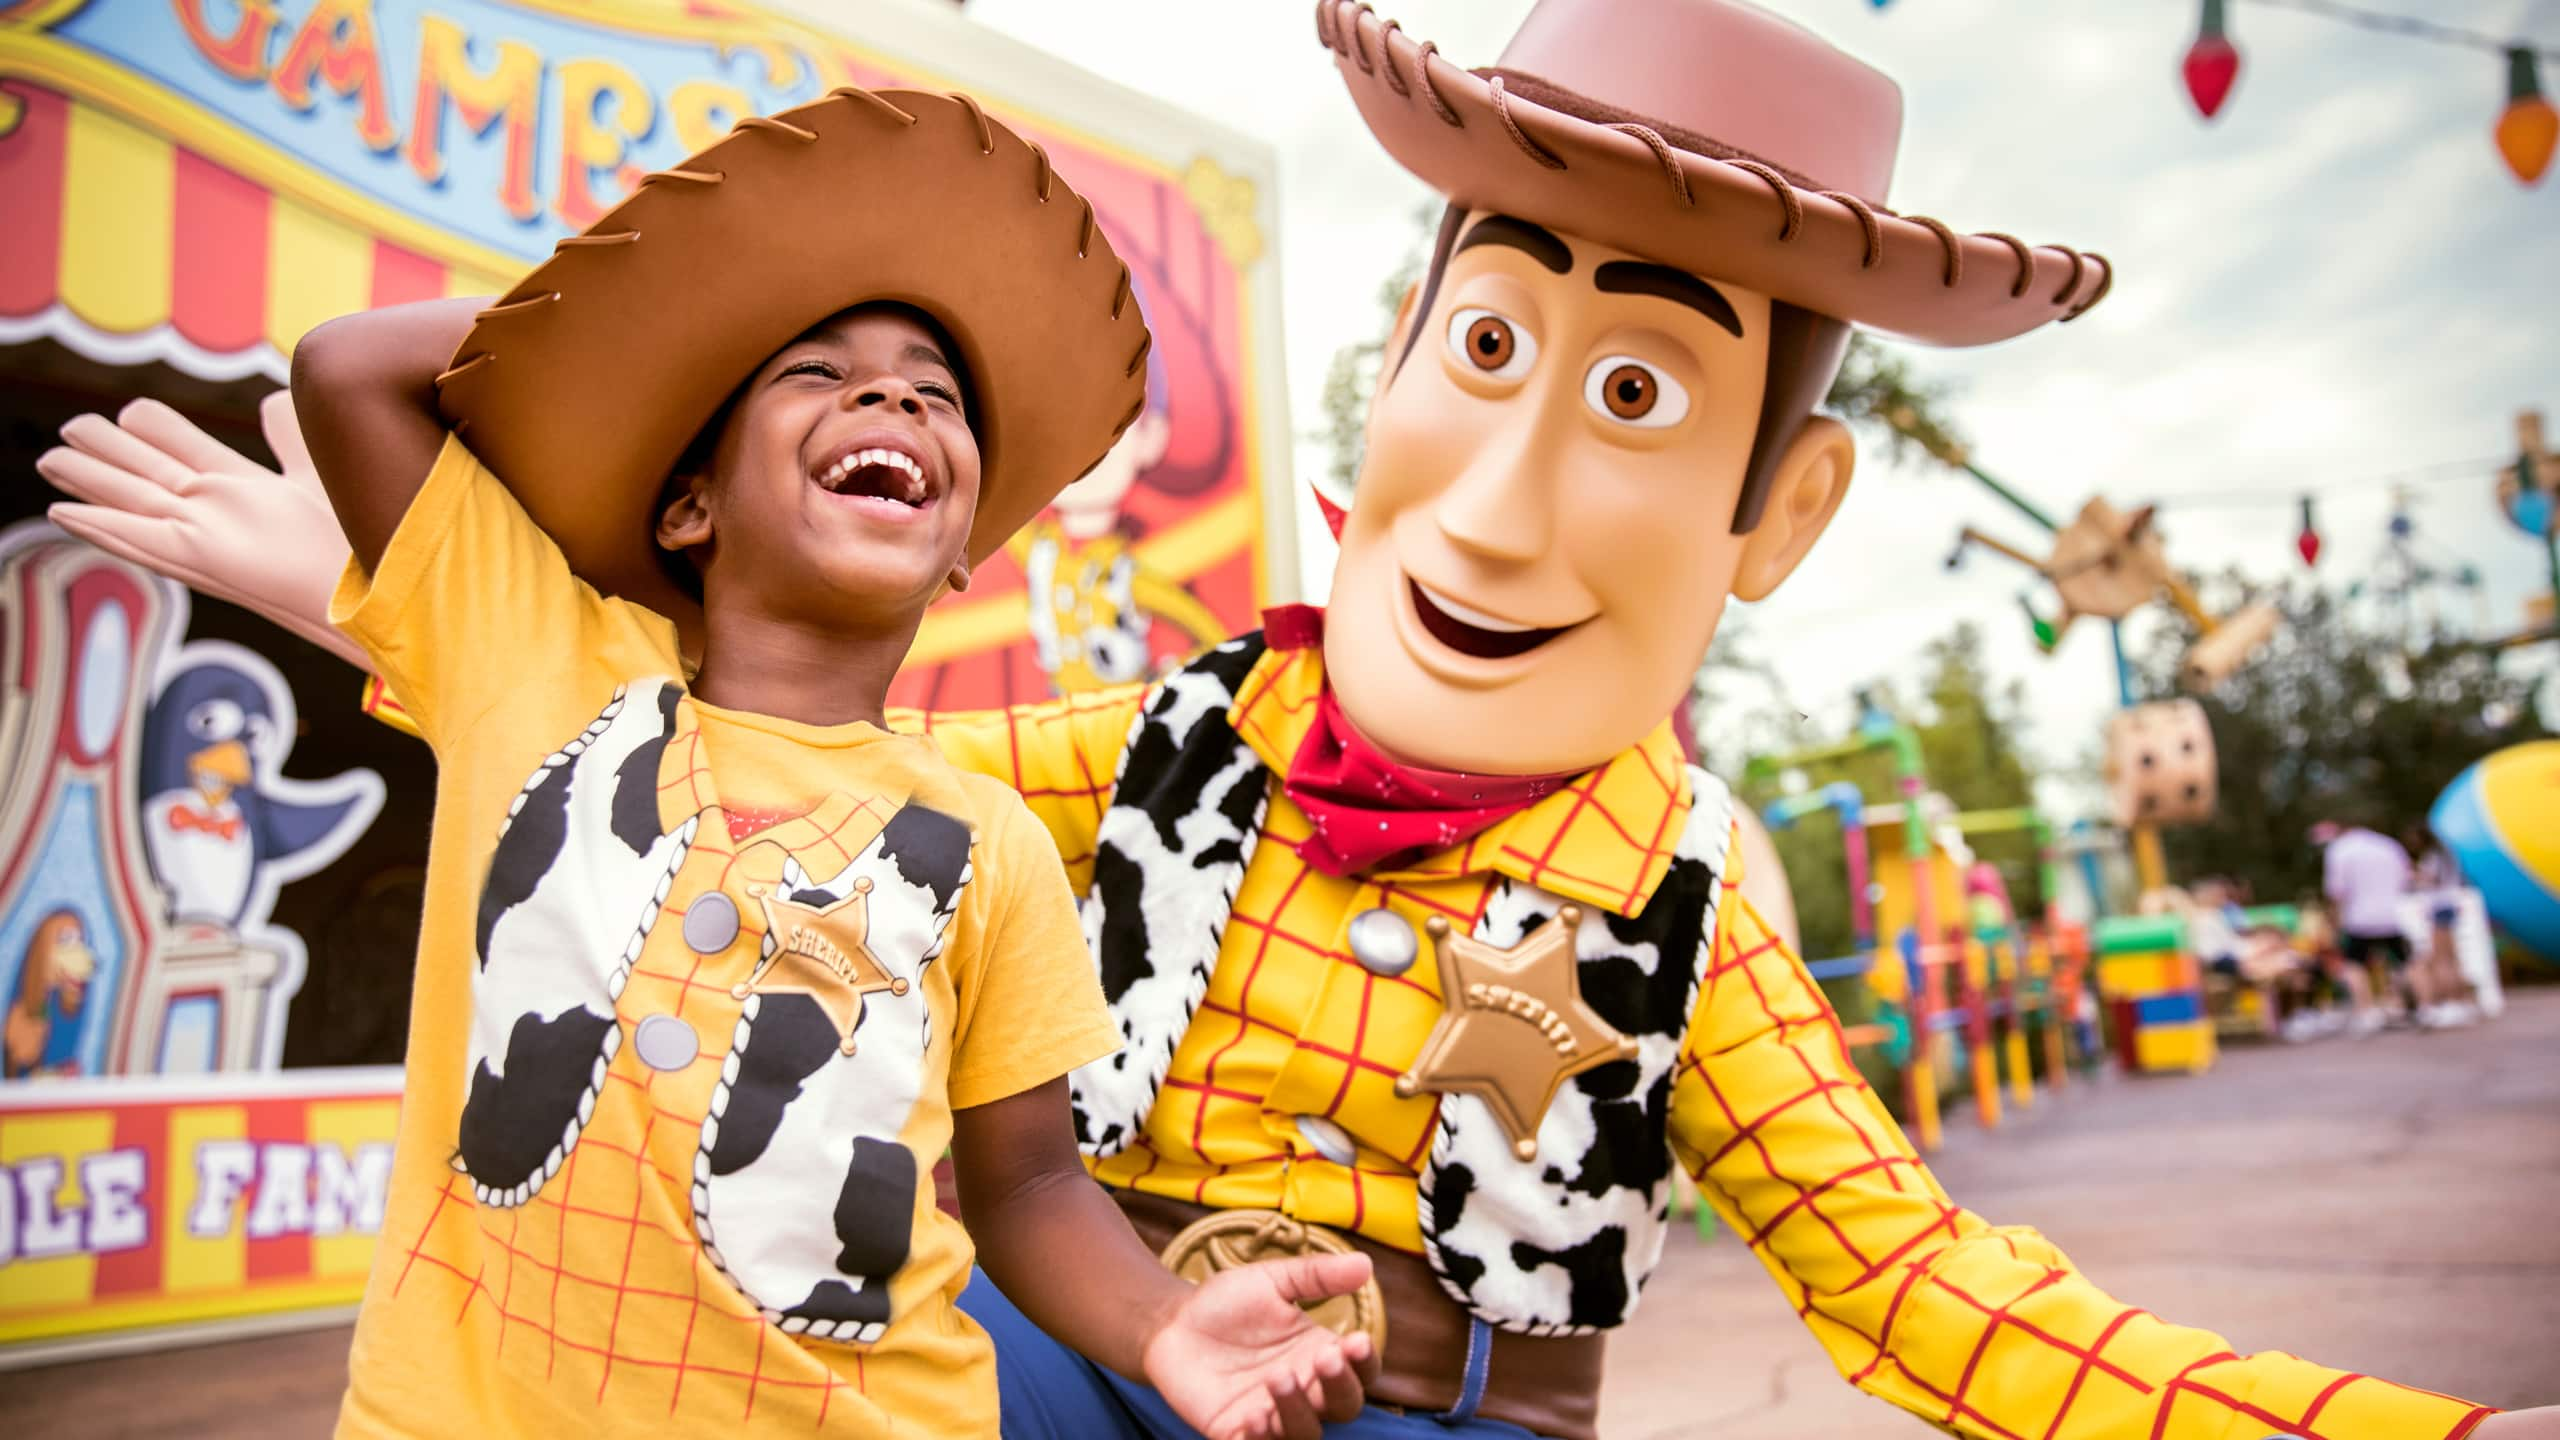 A young boy wearing a Woody themed tee shirt and cowboy hat laughs as a interacts with Woody inside of Toy Story Land